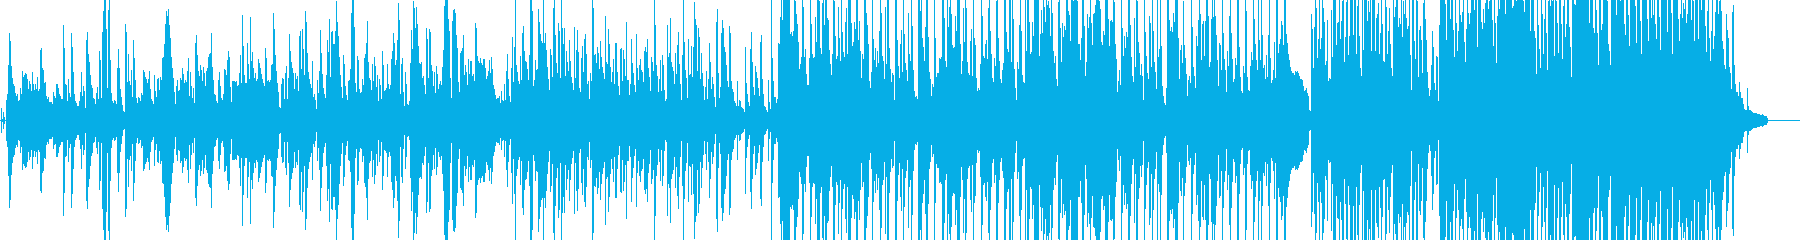 Jazzy female vocalist's reproduced waveform